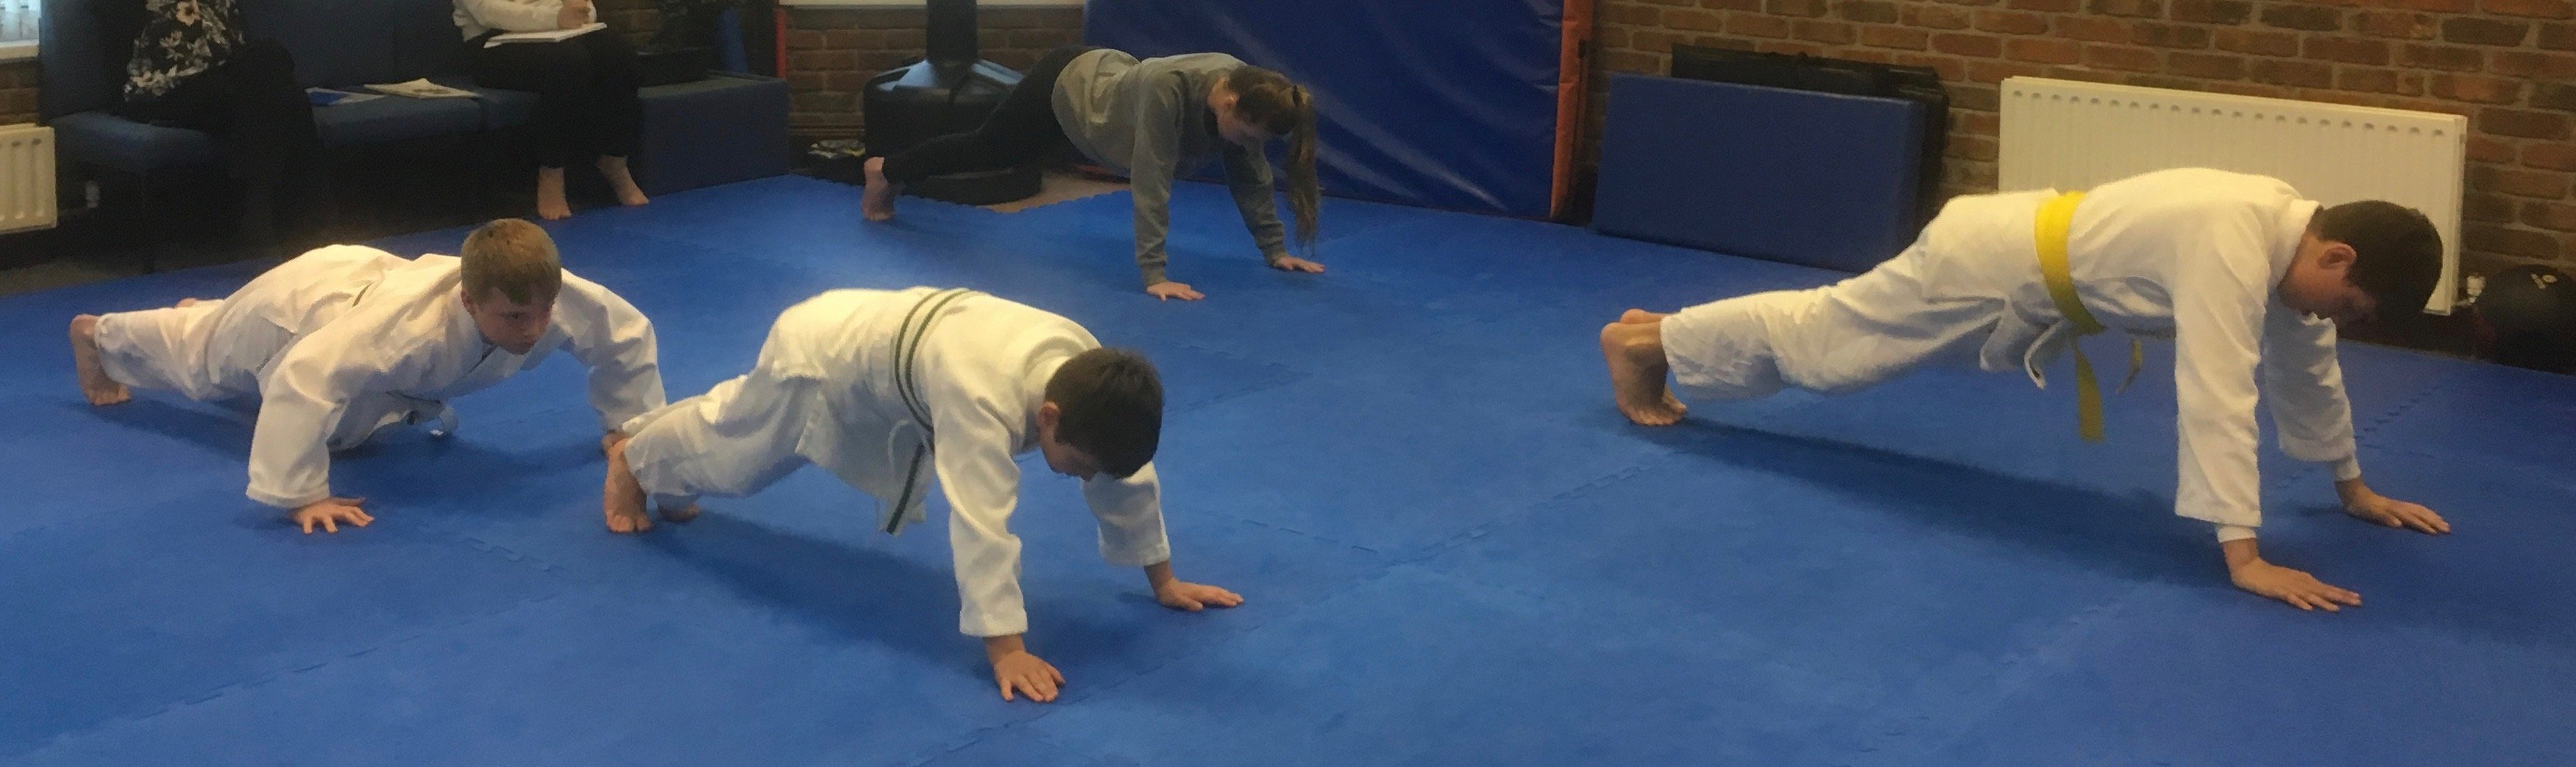 Three students doing press-ups on a blue floor